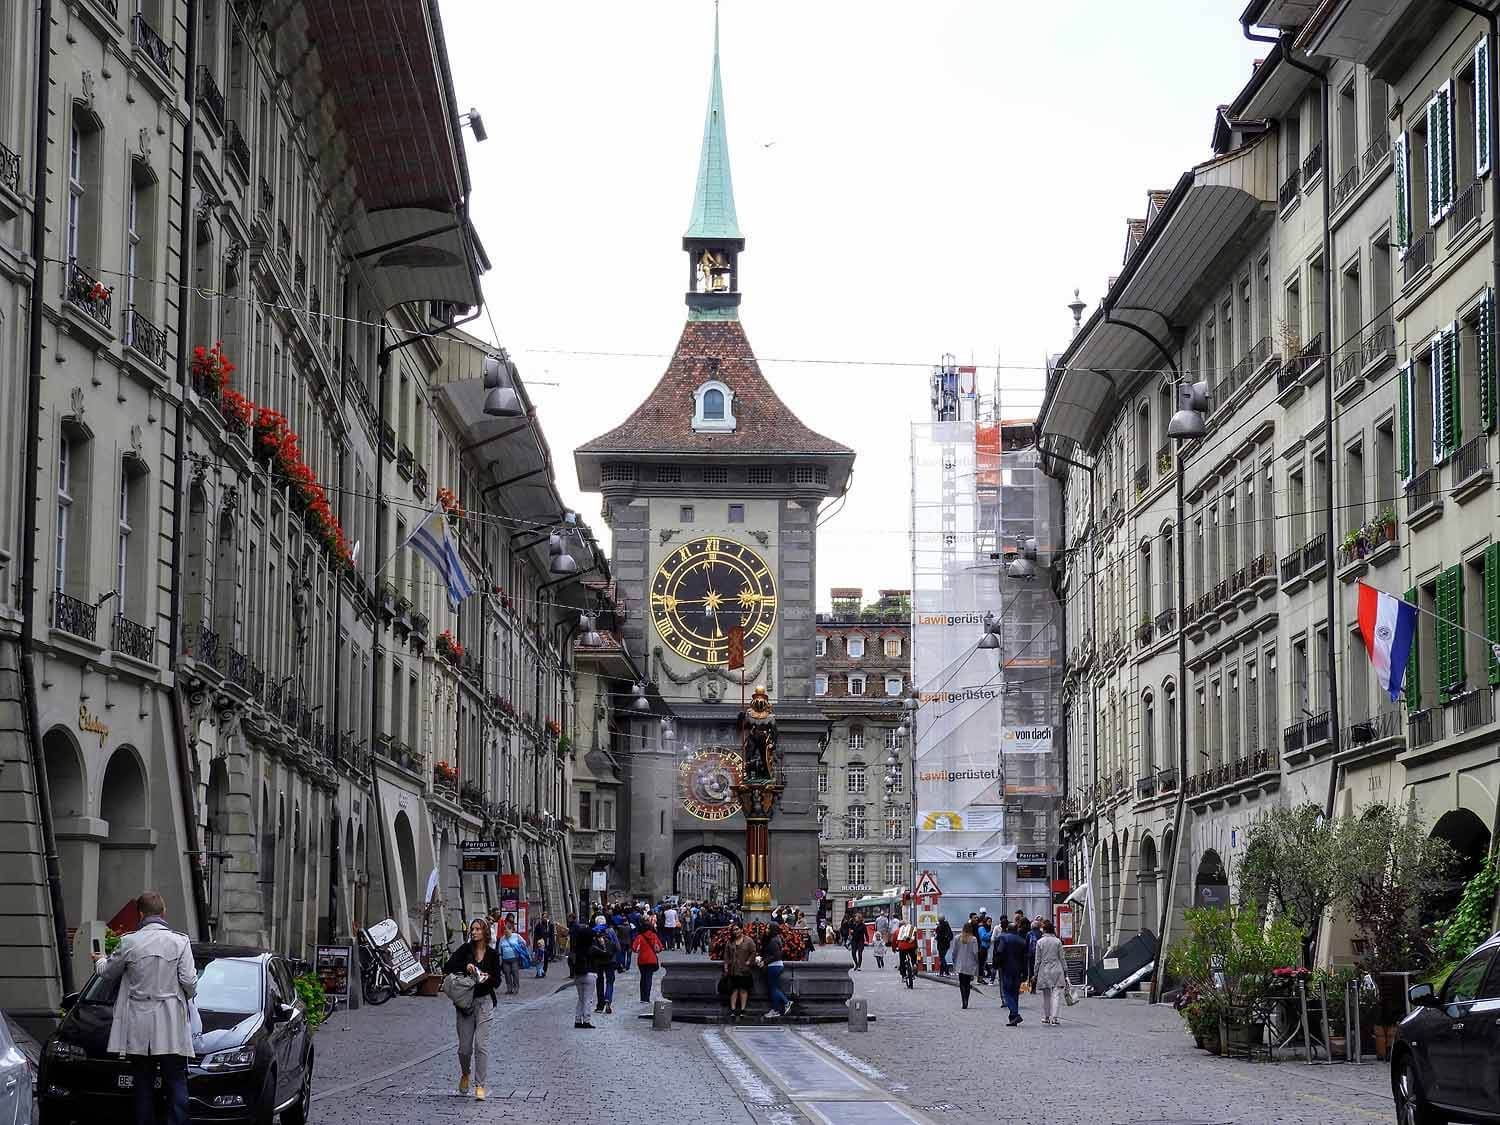 switzerland-bern-altstadt-clock-tower.jpg